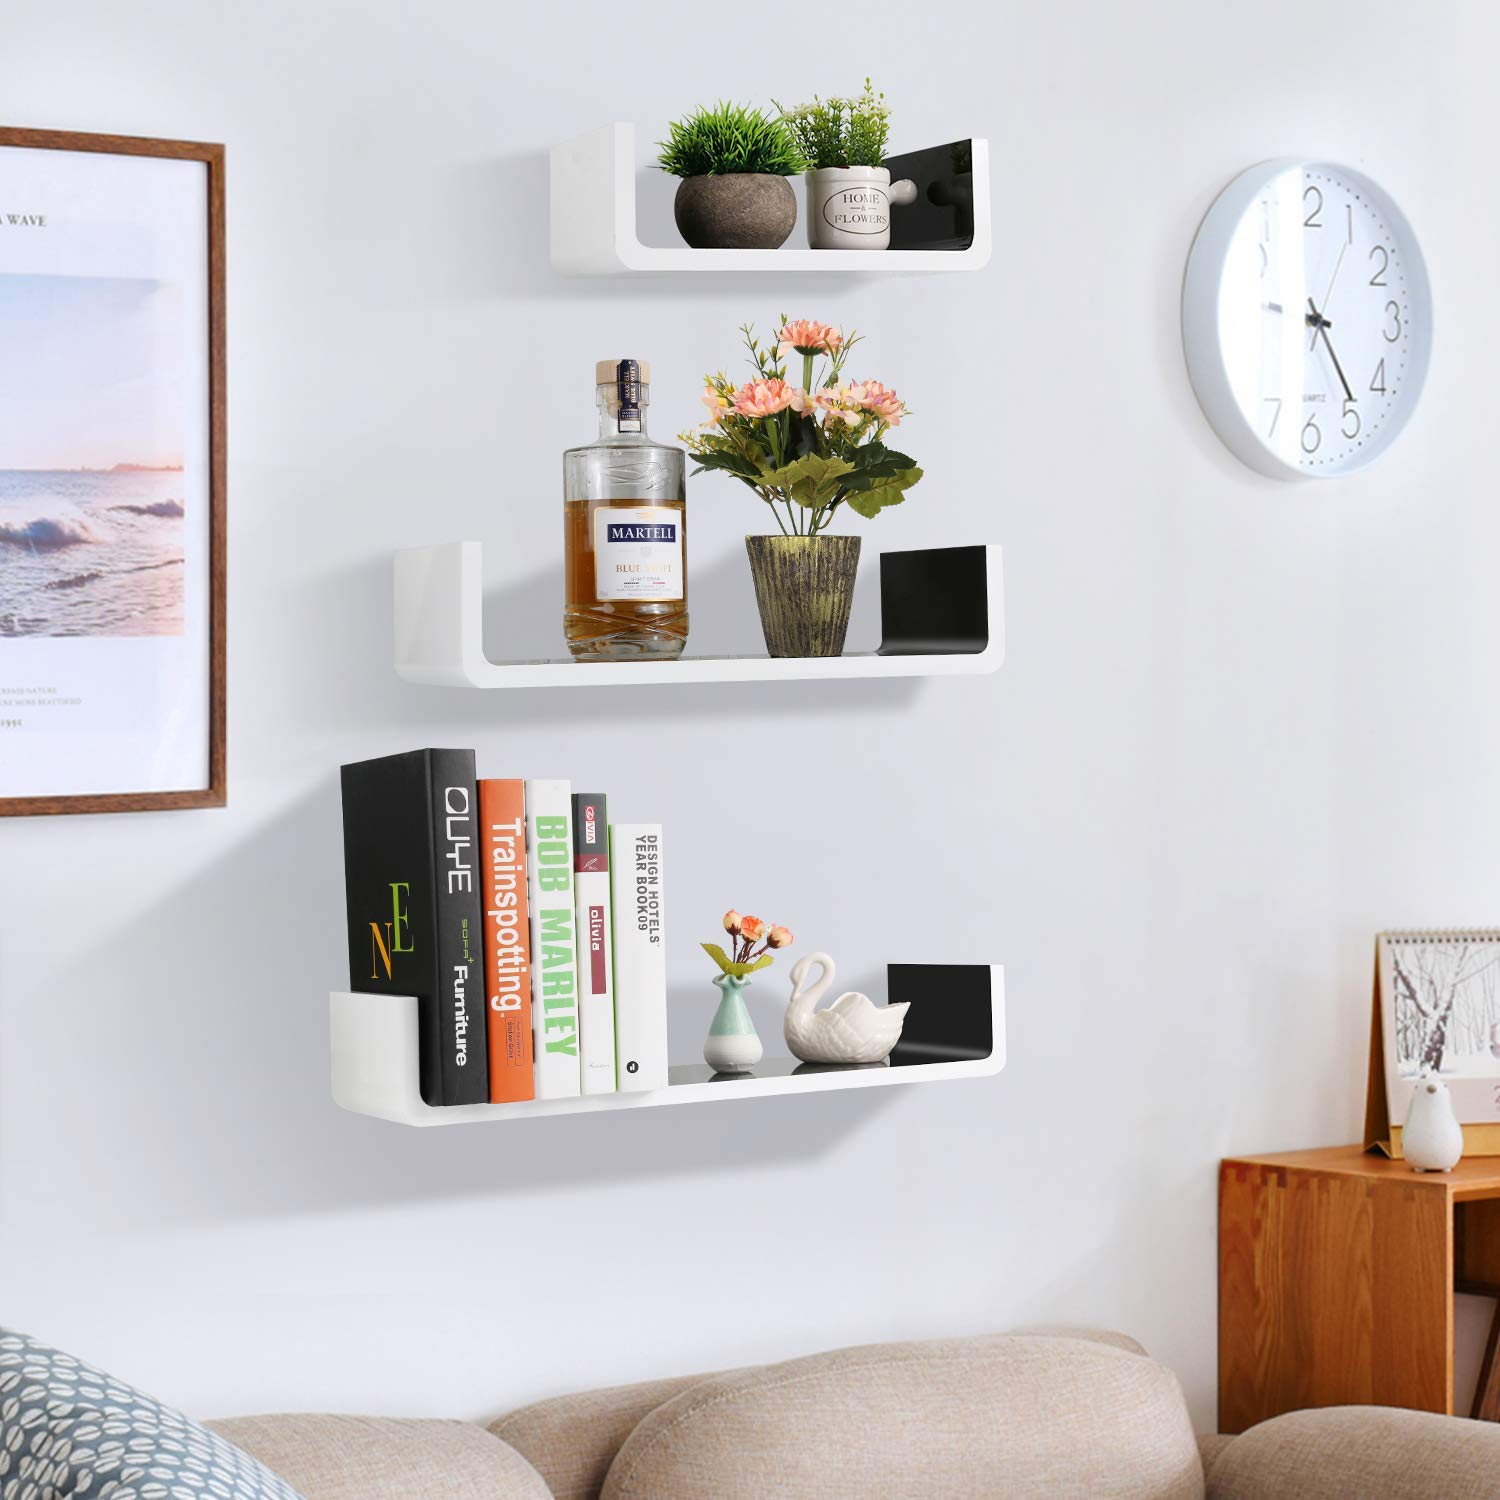 white and black wall shelves floating wooden qal bathroom shelving bookshelf storage set shape mount bookcase for living room open bookshelves ideas countertop basin cabinet inch